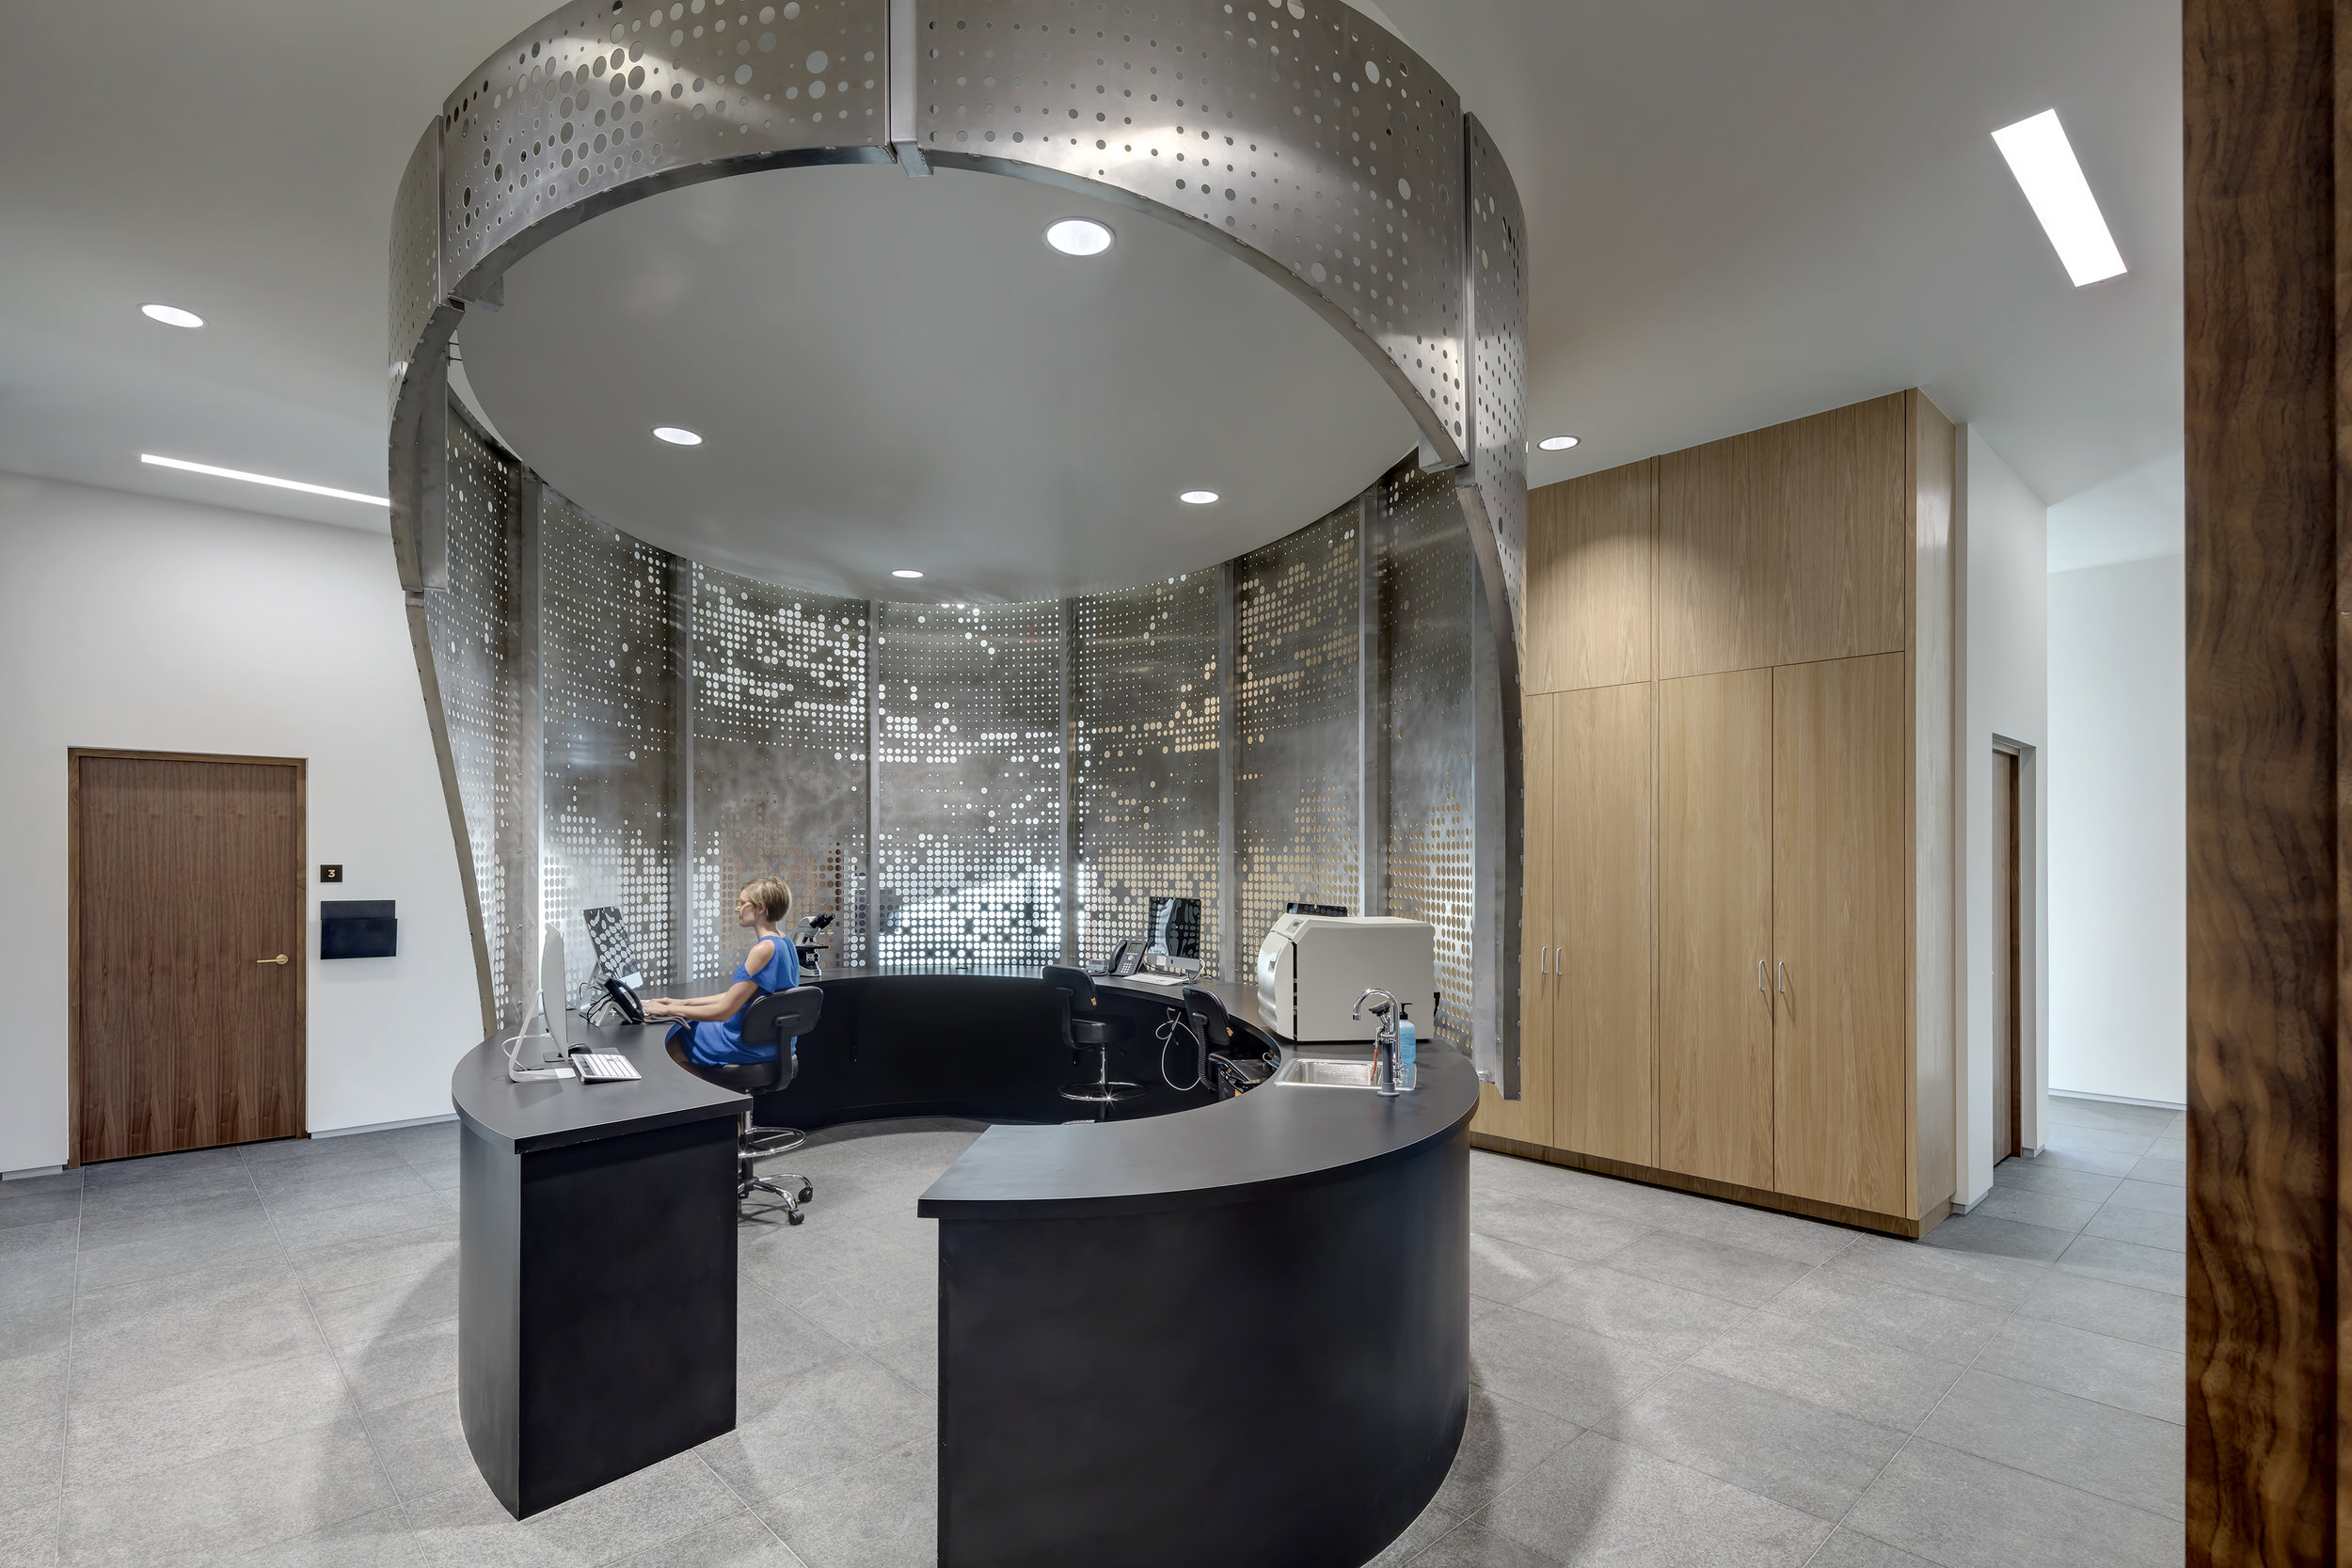 Westlake Dermatology Cedar Park by Matt Fajkus Architecture_interior photo 7 by Charles Davis Smith.jpg